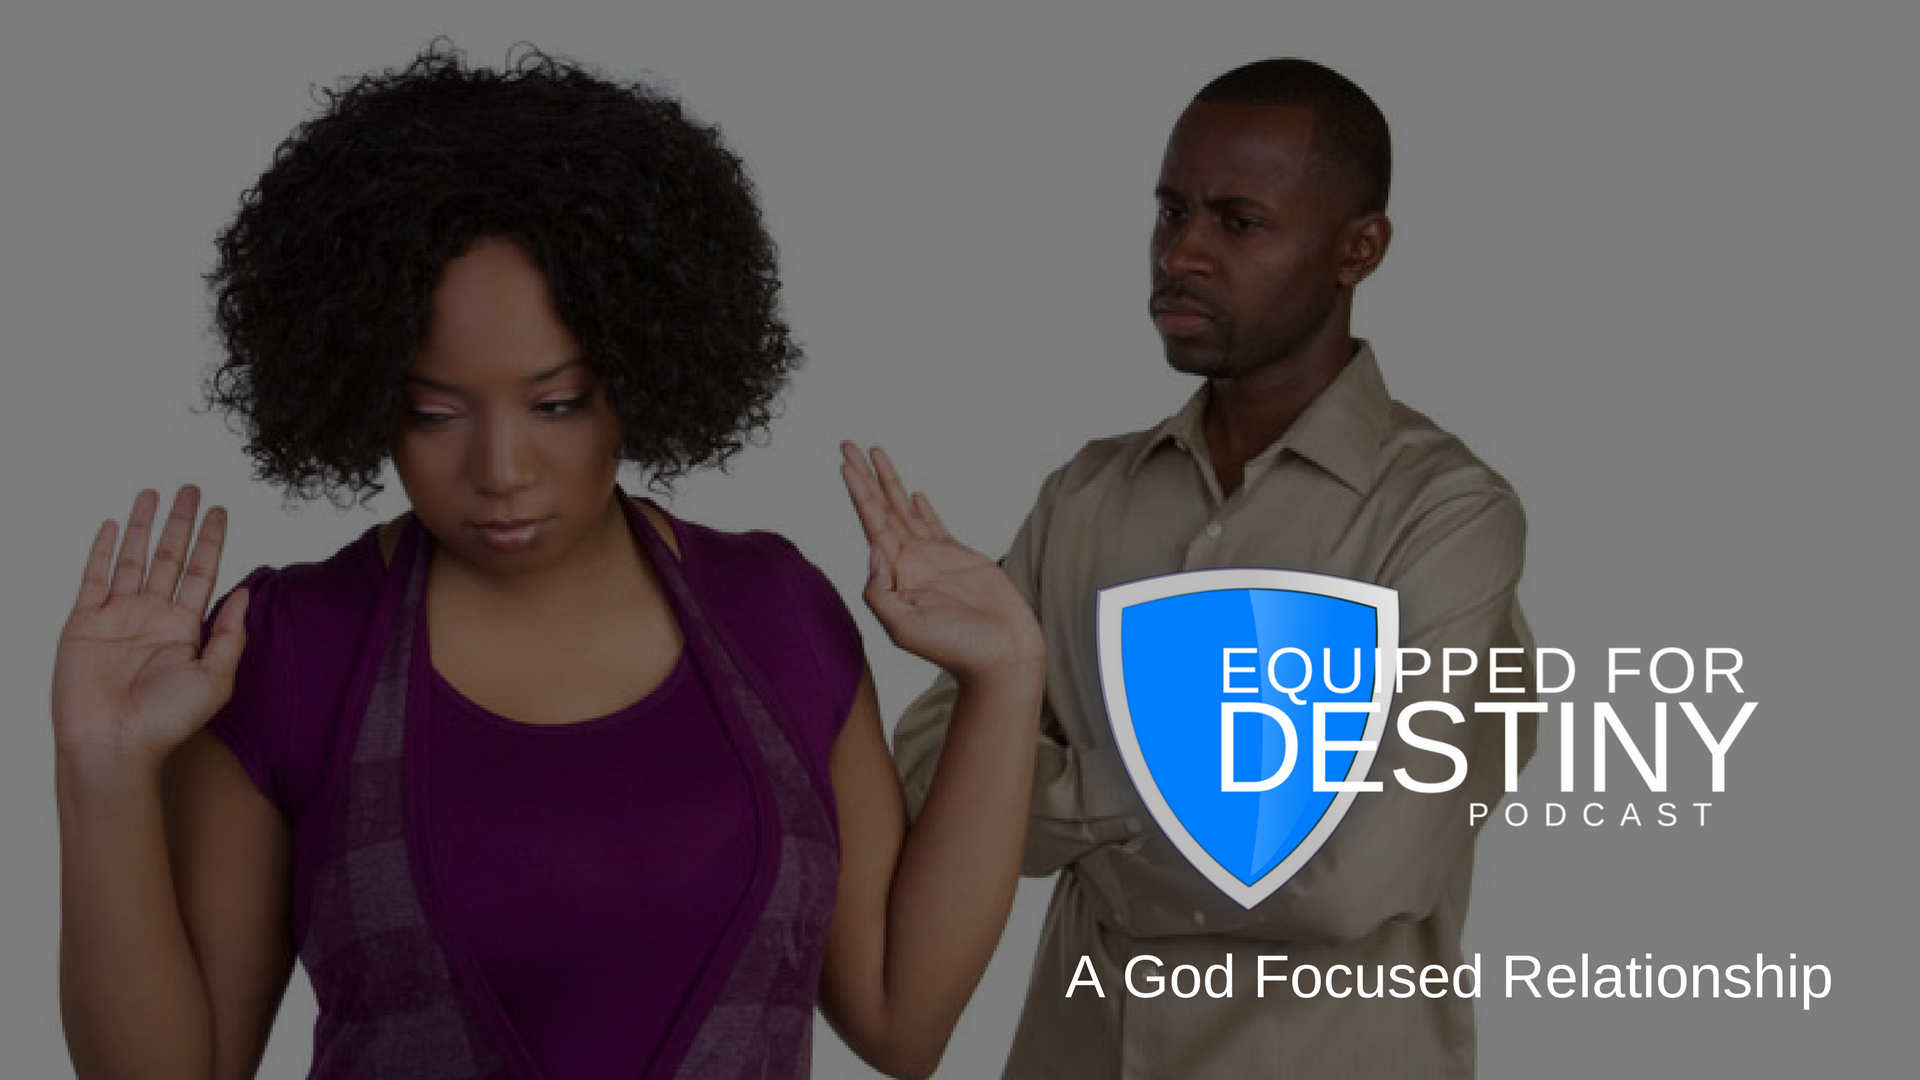 A God Focused Marriage